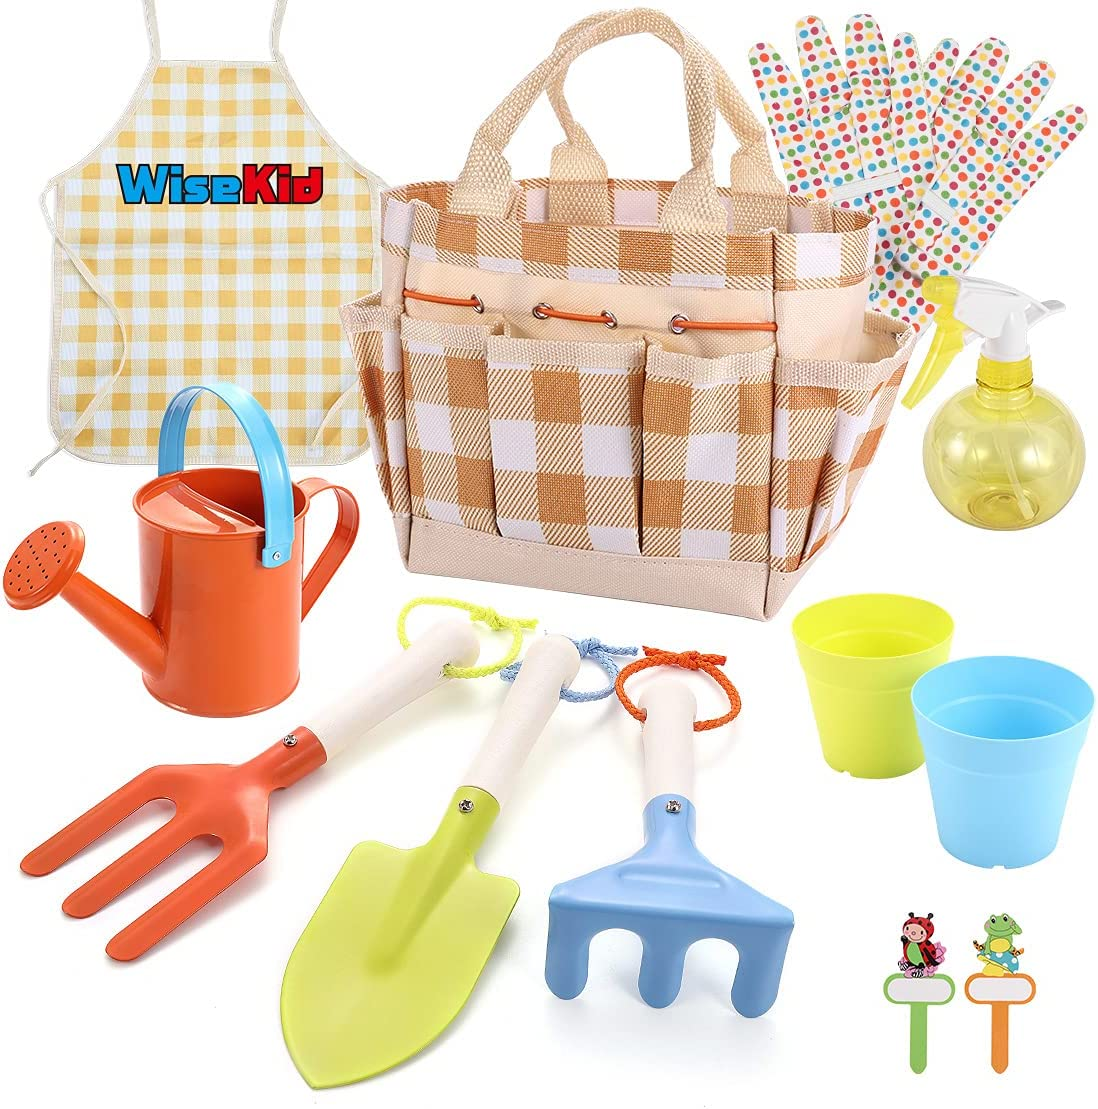 Wisekid Kids Gardening Tool Set, 12-Piece Includes Kids Size Fork, Trowel, Rake, Apron, Gloves, Watering Can, Tote Bag, Plant Pot and Tags, Wooden Handle and Durable Design, Gift for Boys and Girls